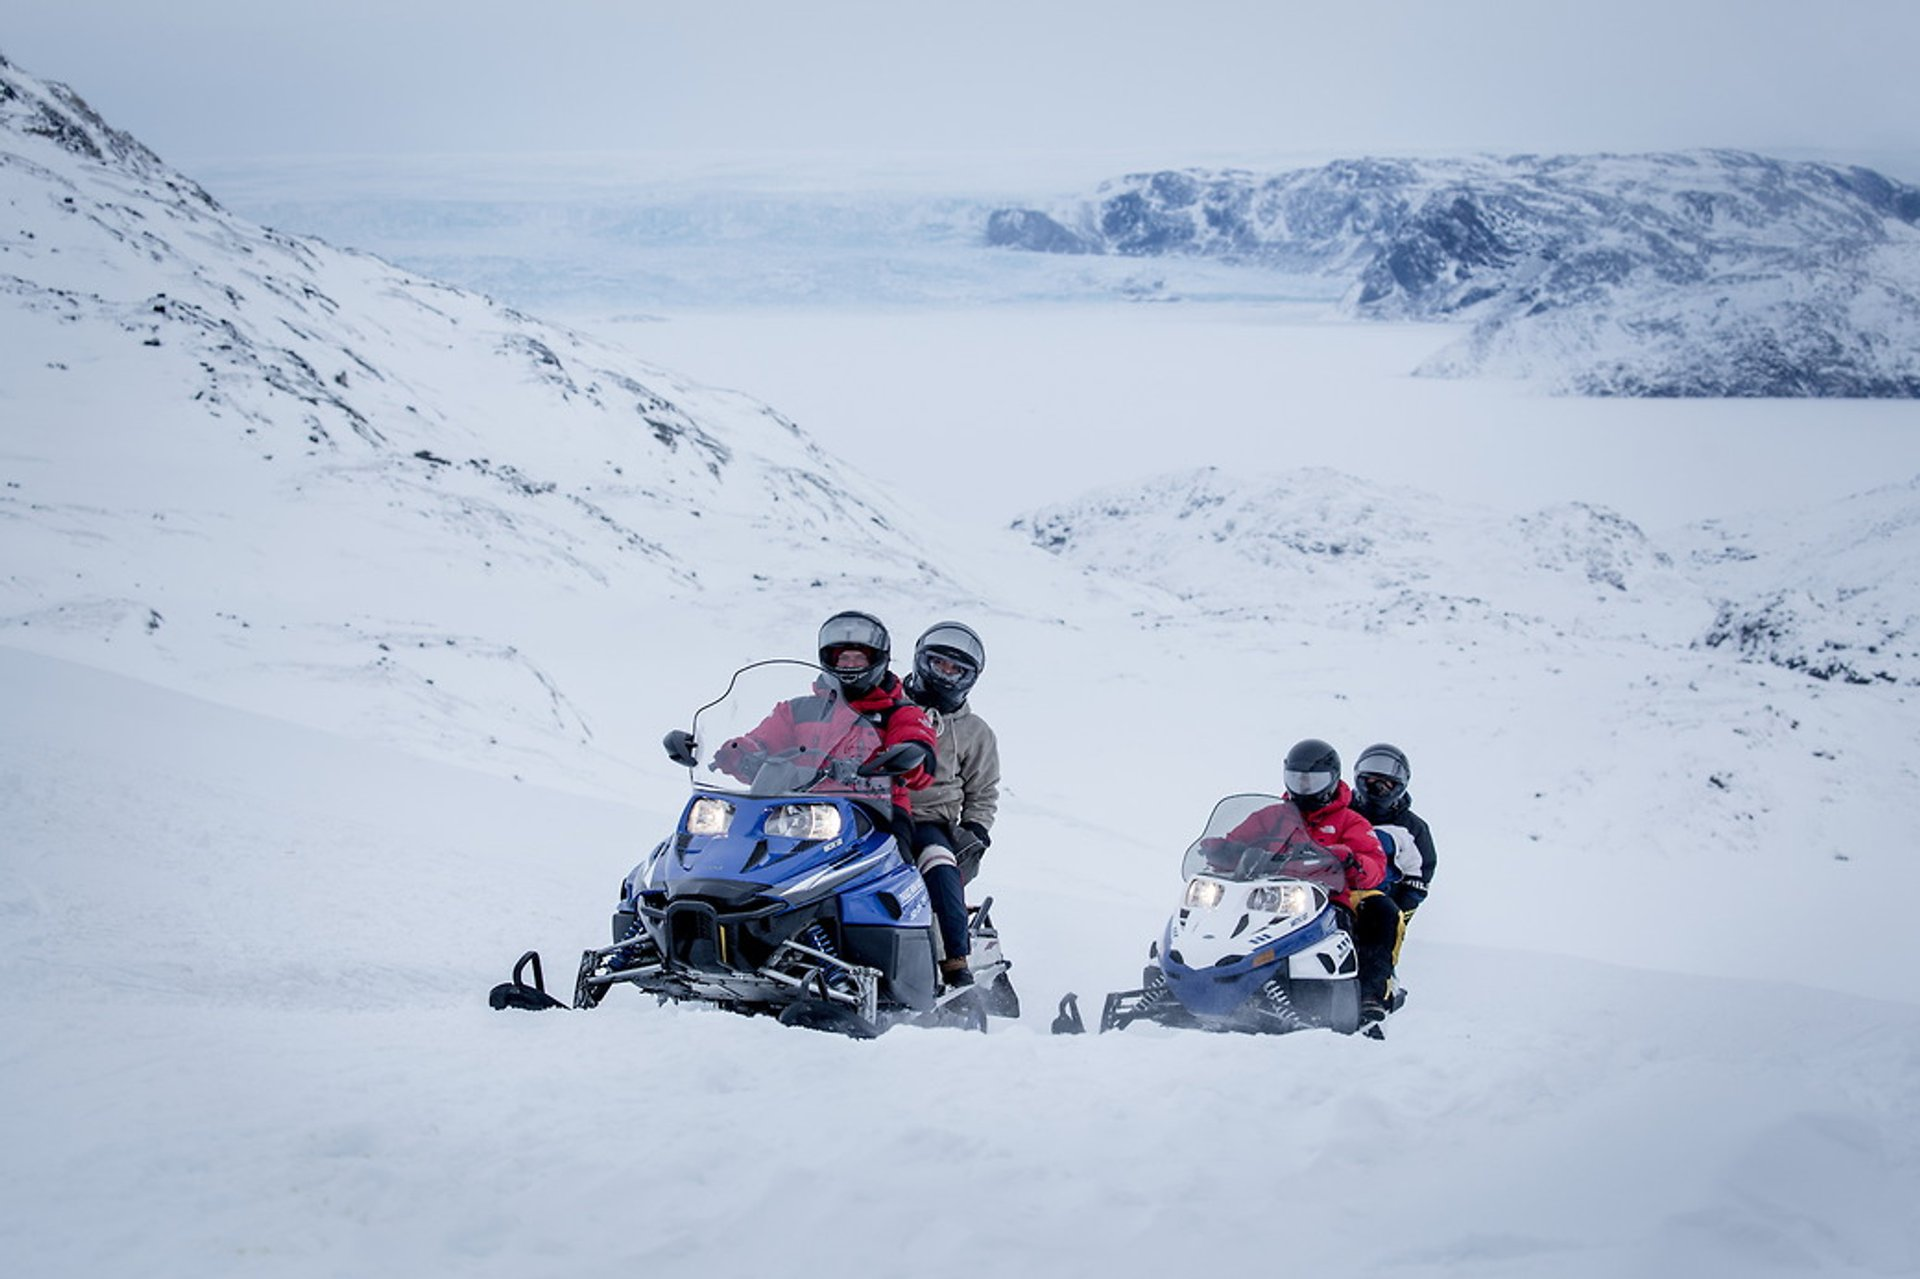 A snowmobile ride with PGI Greenland in the Ilulissat backcountry in Greenland 2019